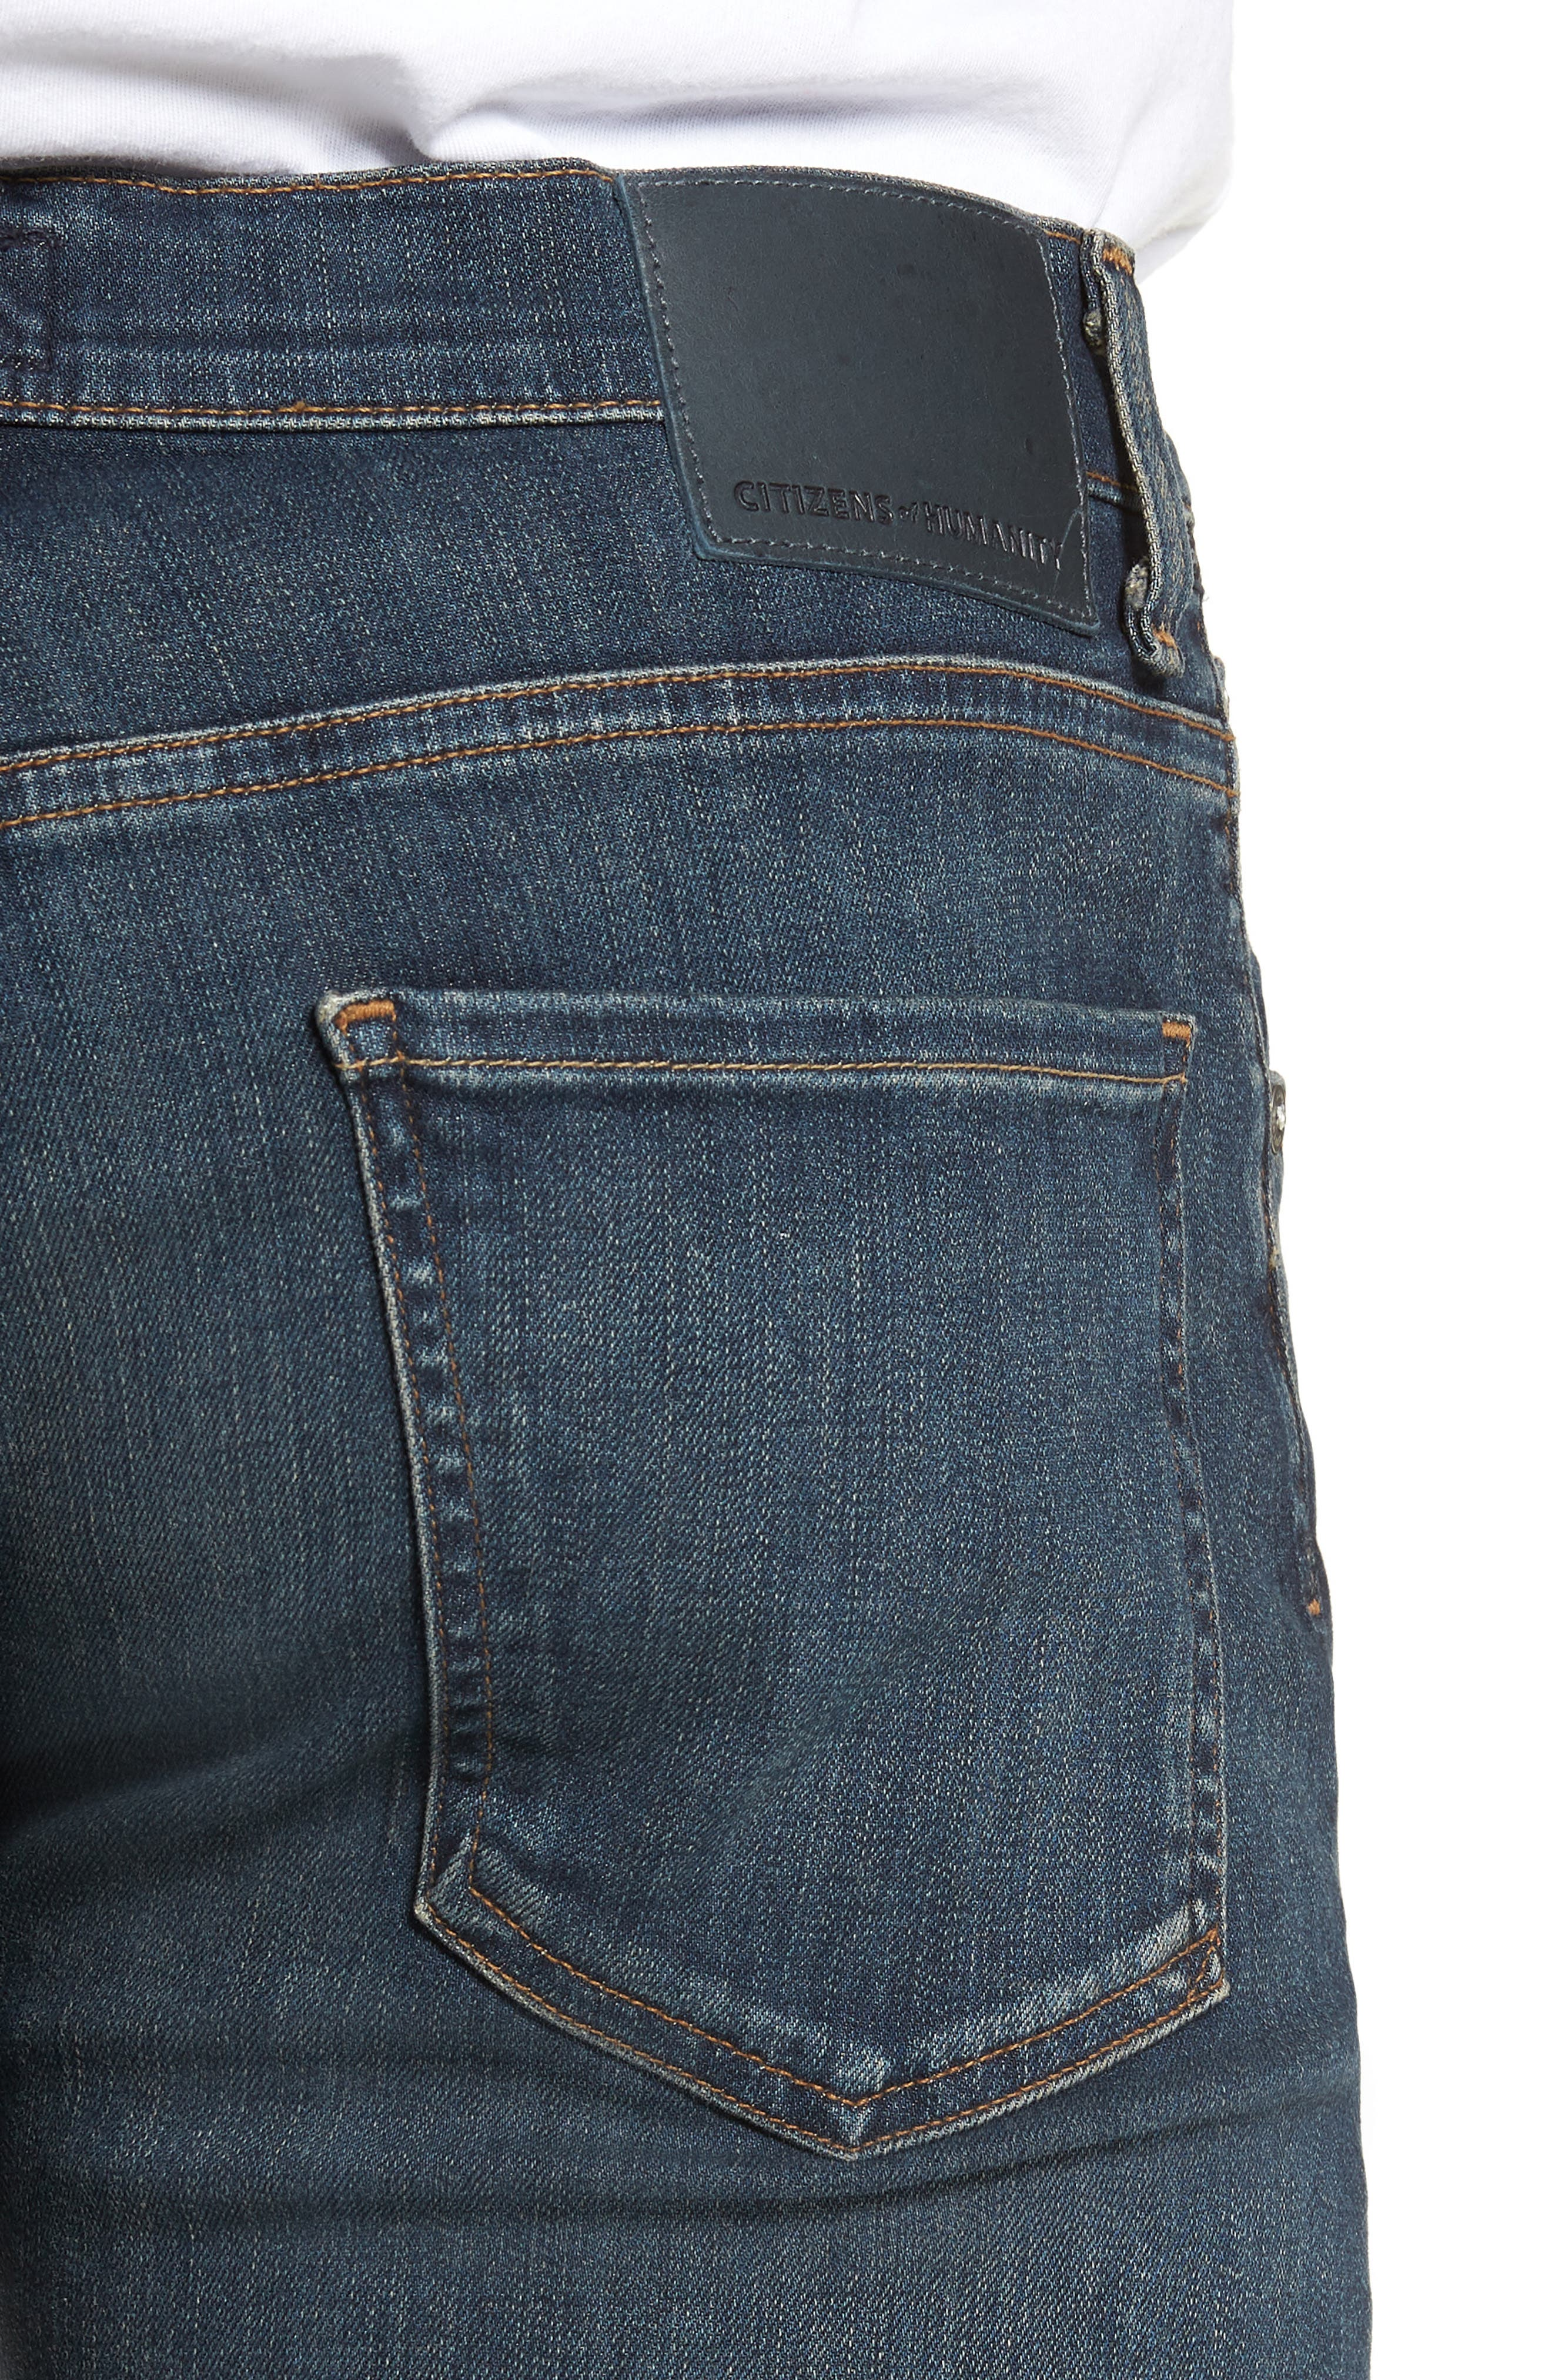 PERFORM - Bowery Slim Fit Jeans,                             Alternate thumbnail 4, color,                             424